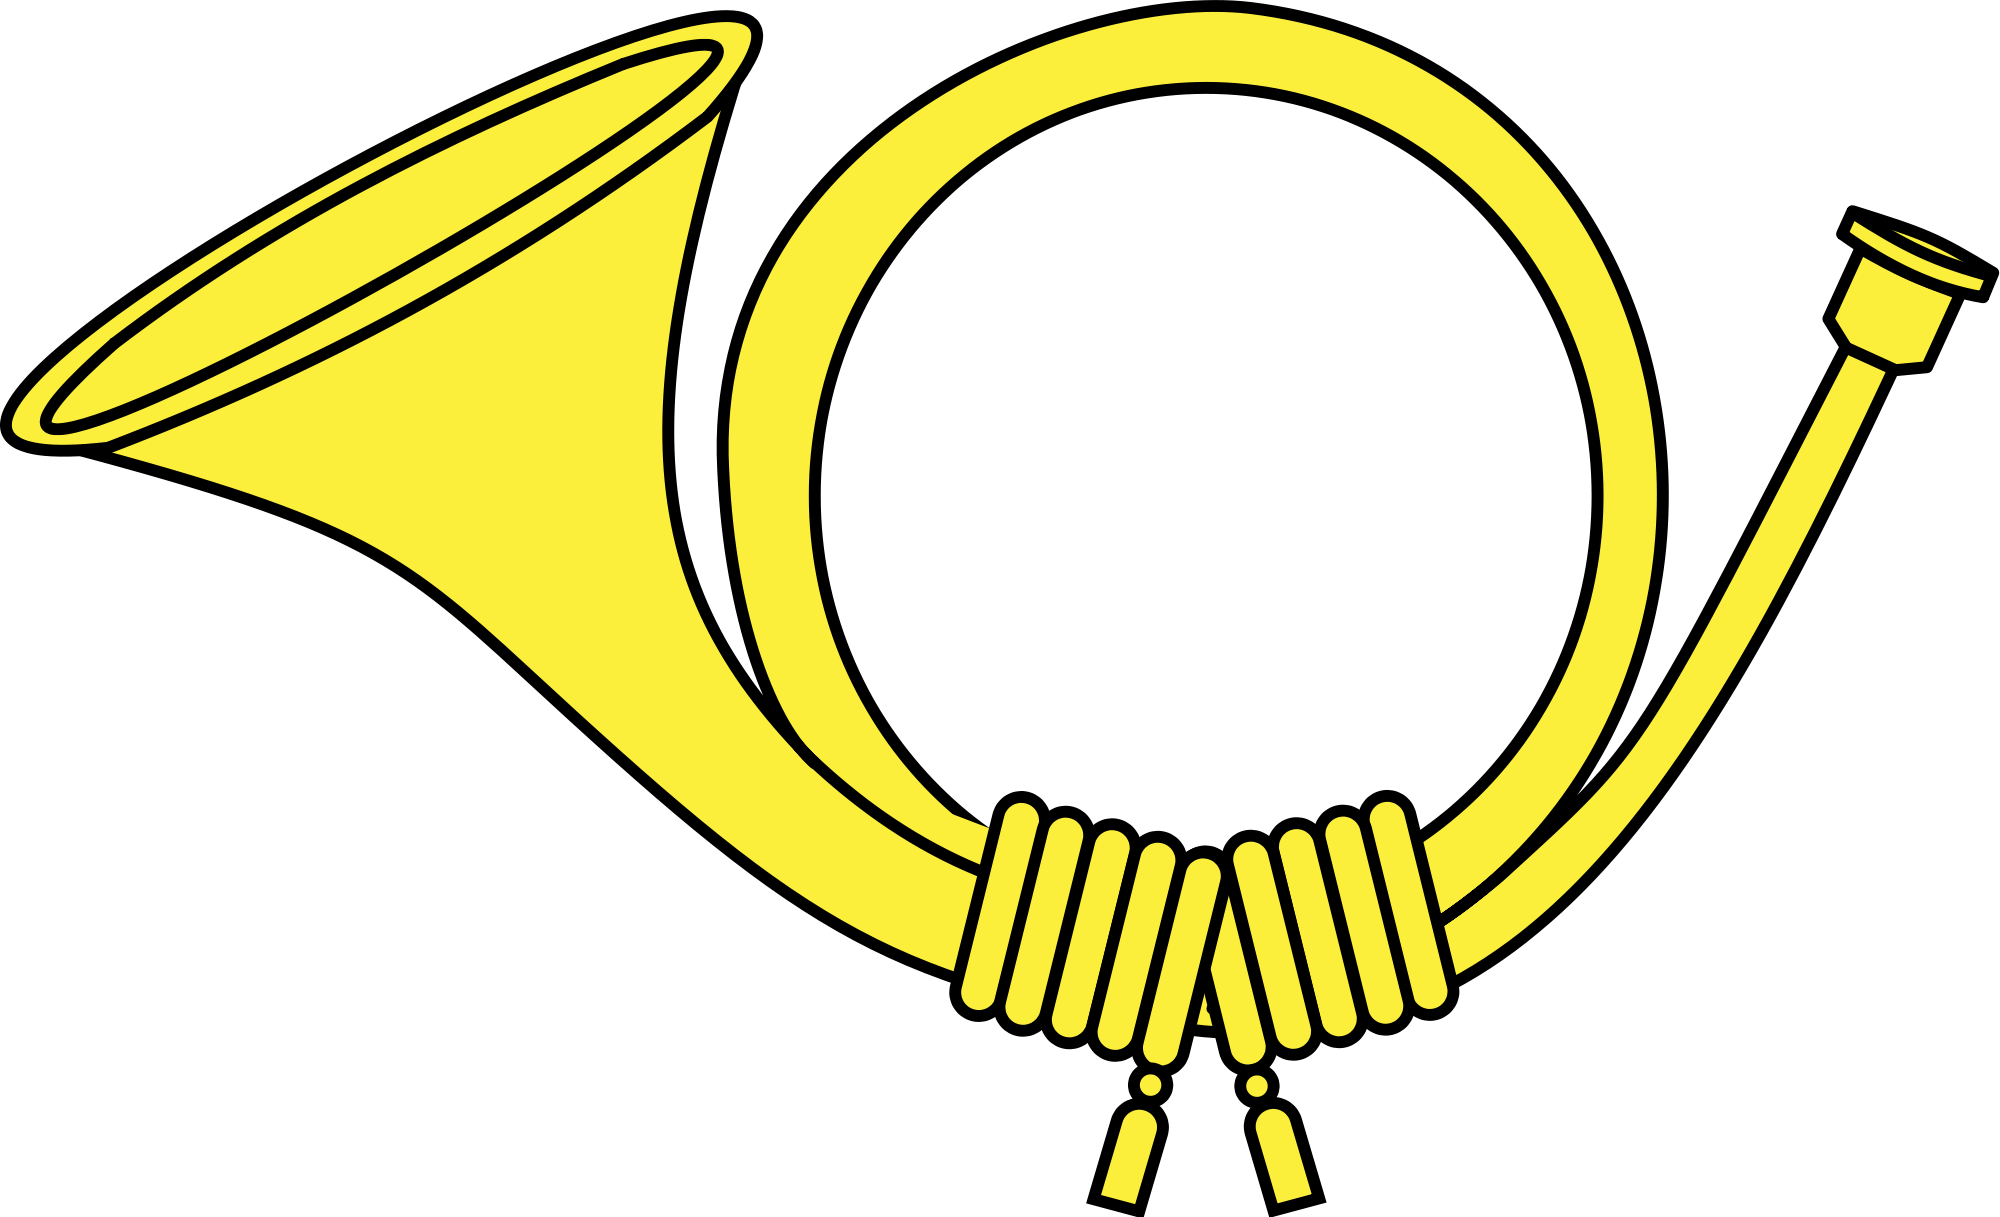 Horn clipart. Yellow post transparent png